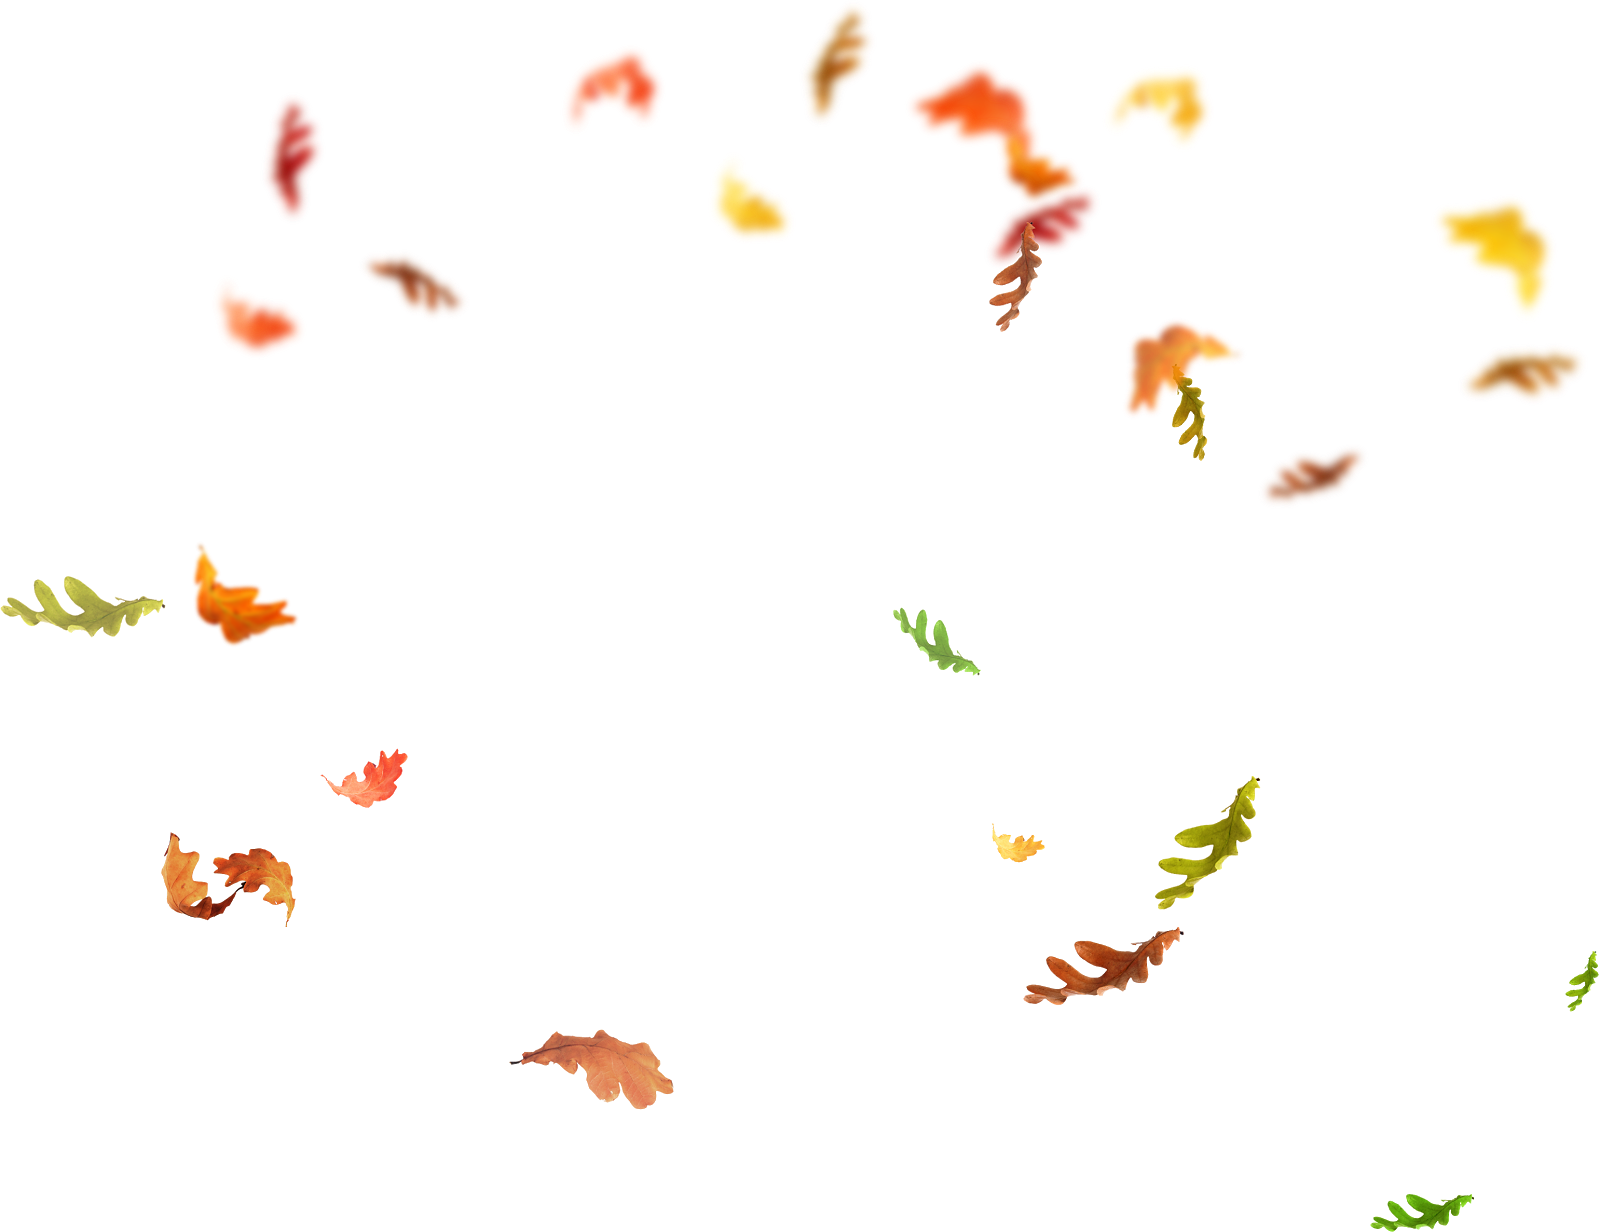 Butterfly overlay png. Leaf falling transprent free